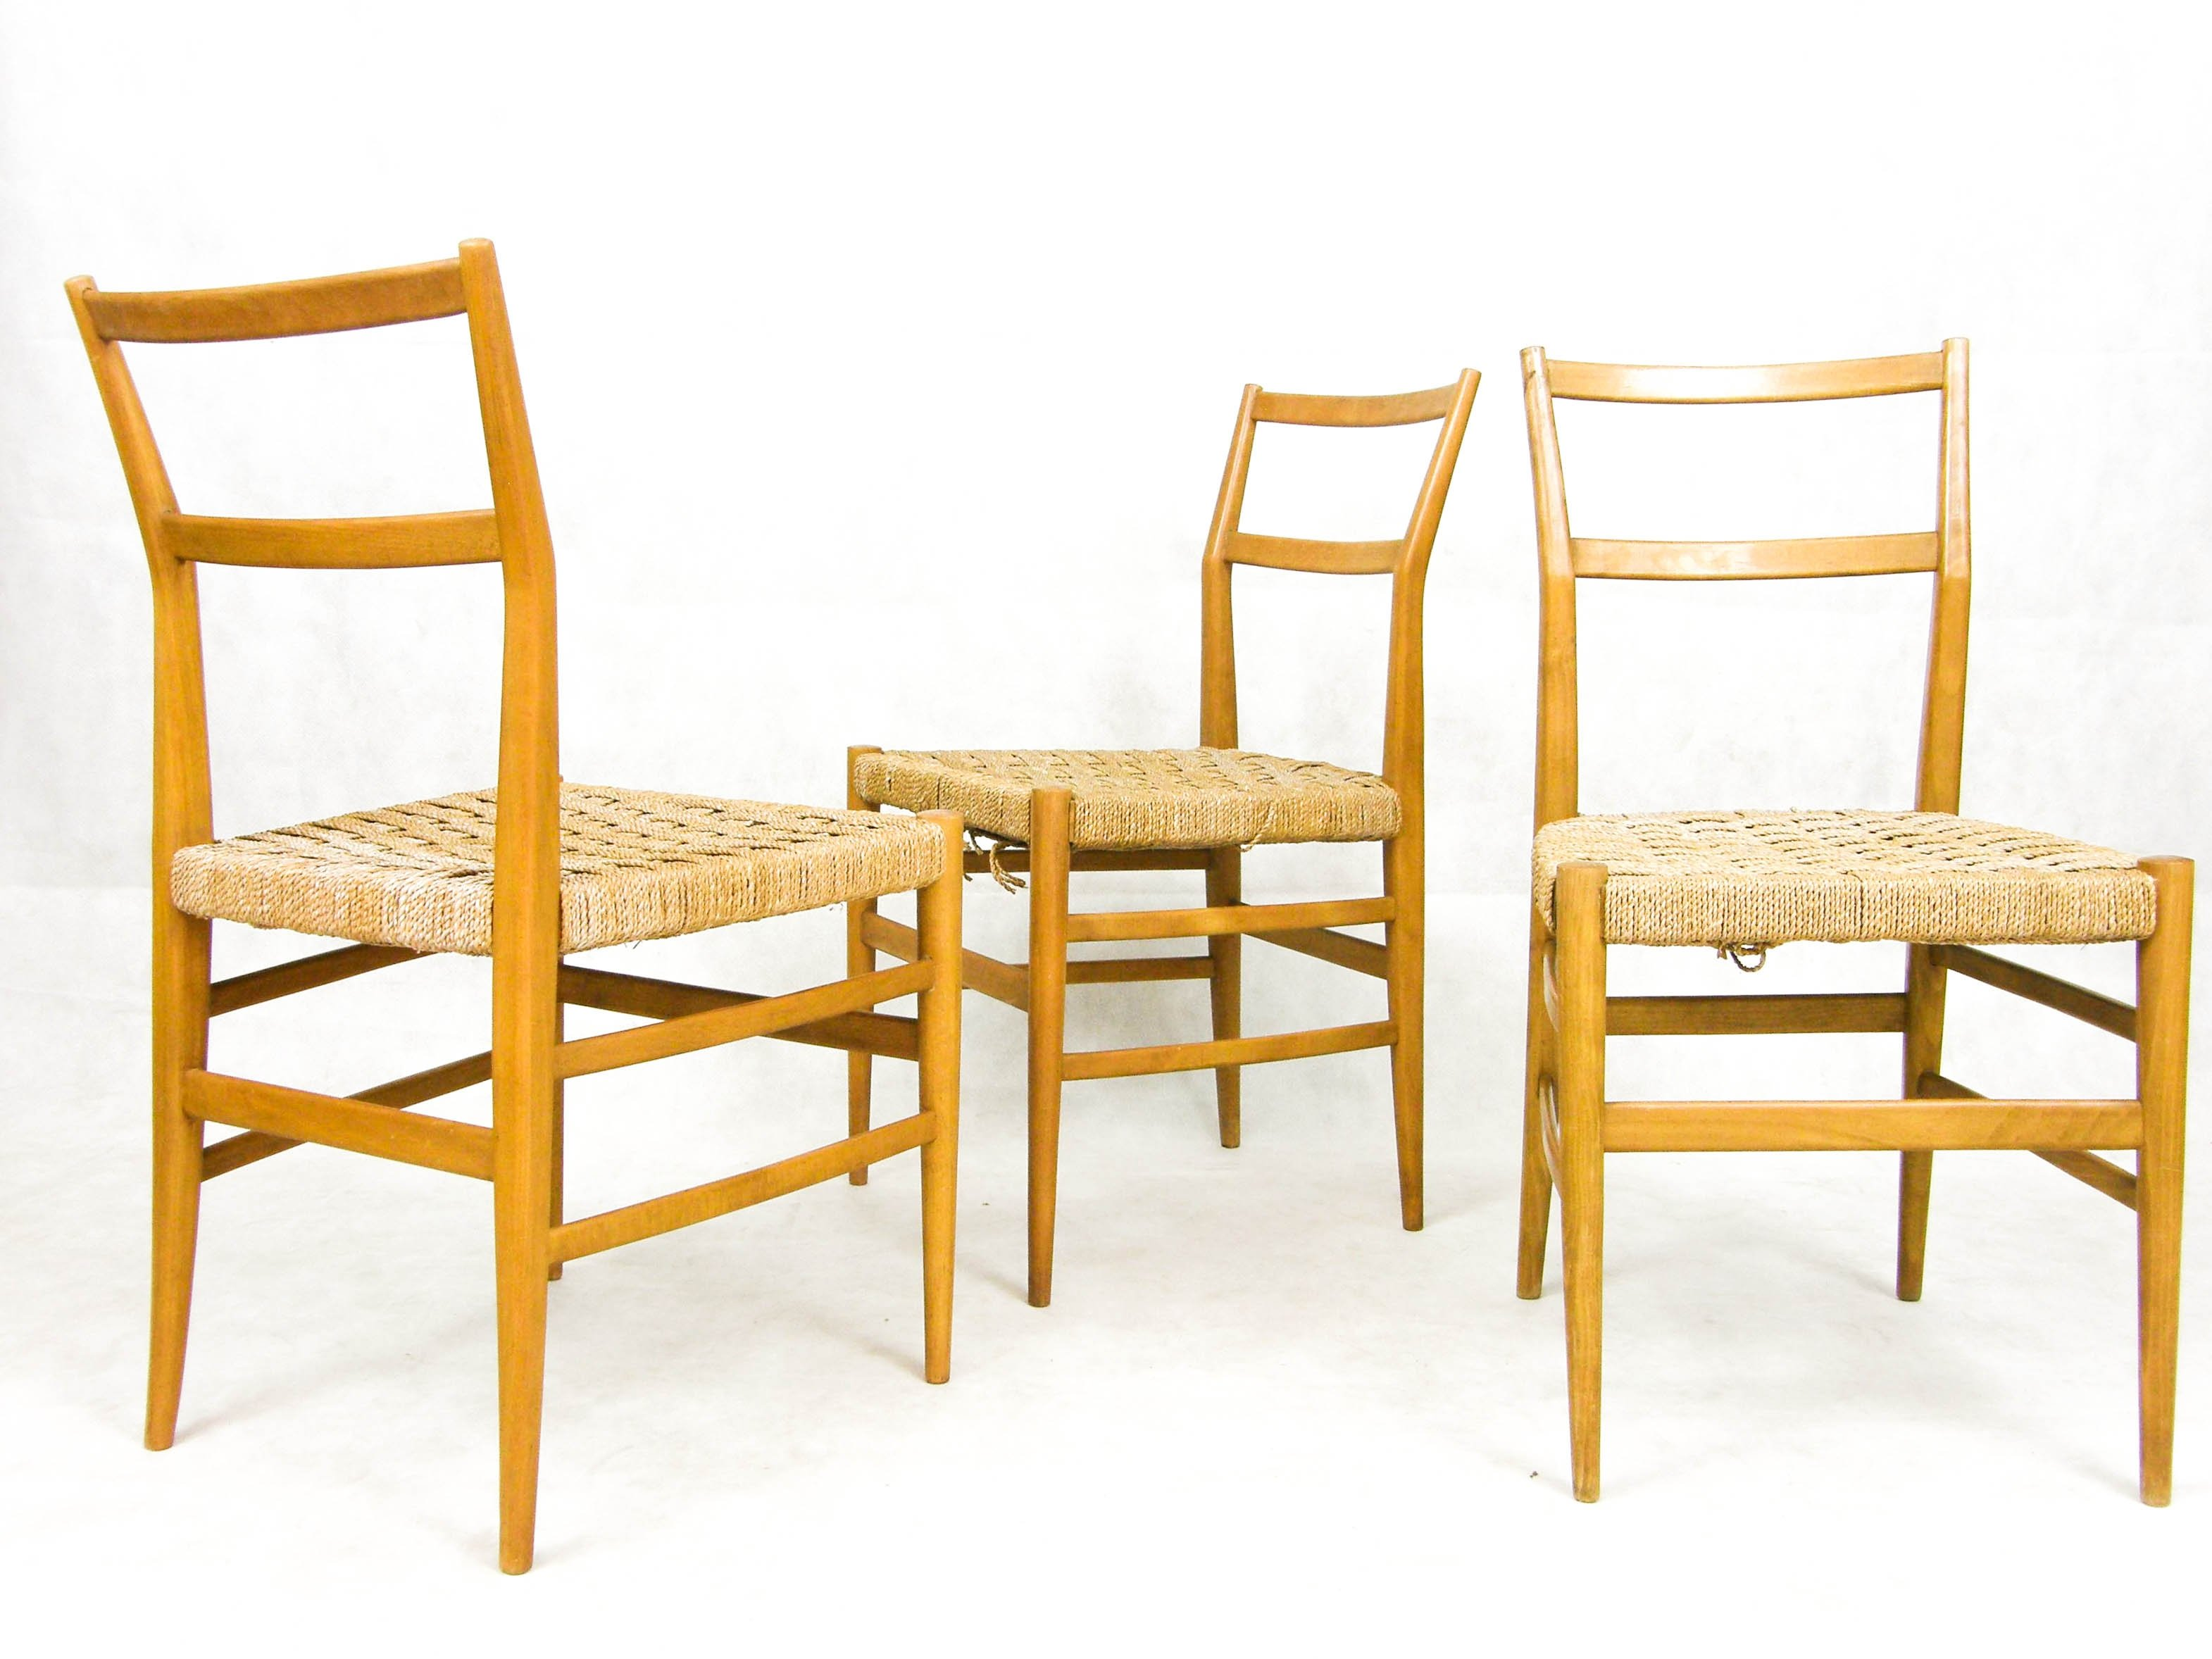 3 X Leggera Dining Chair By Gio Ponti For Cassina, 1950s | #66481